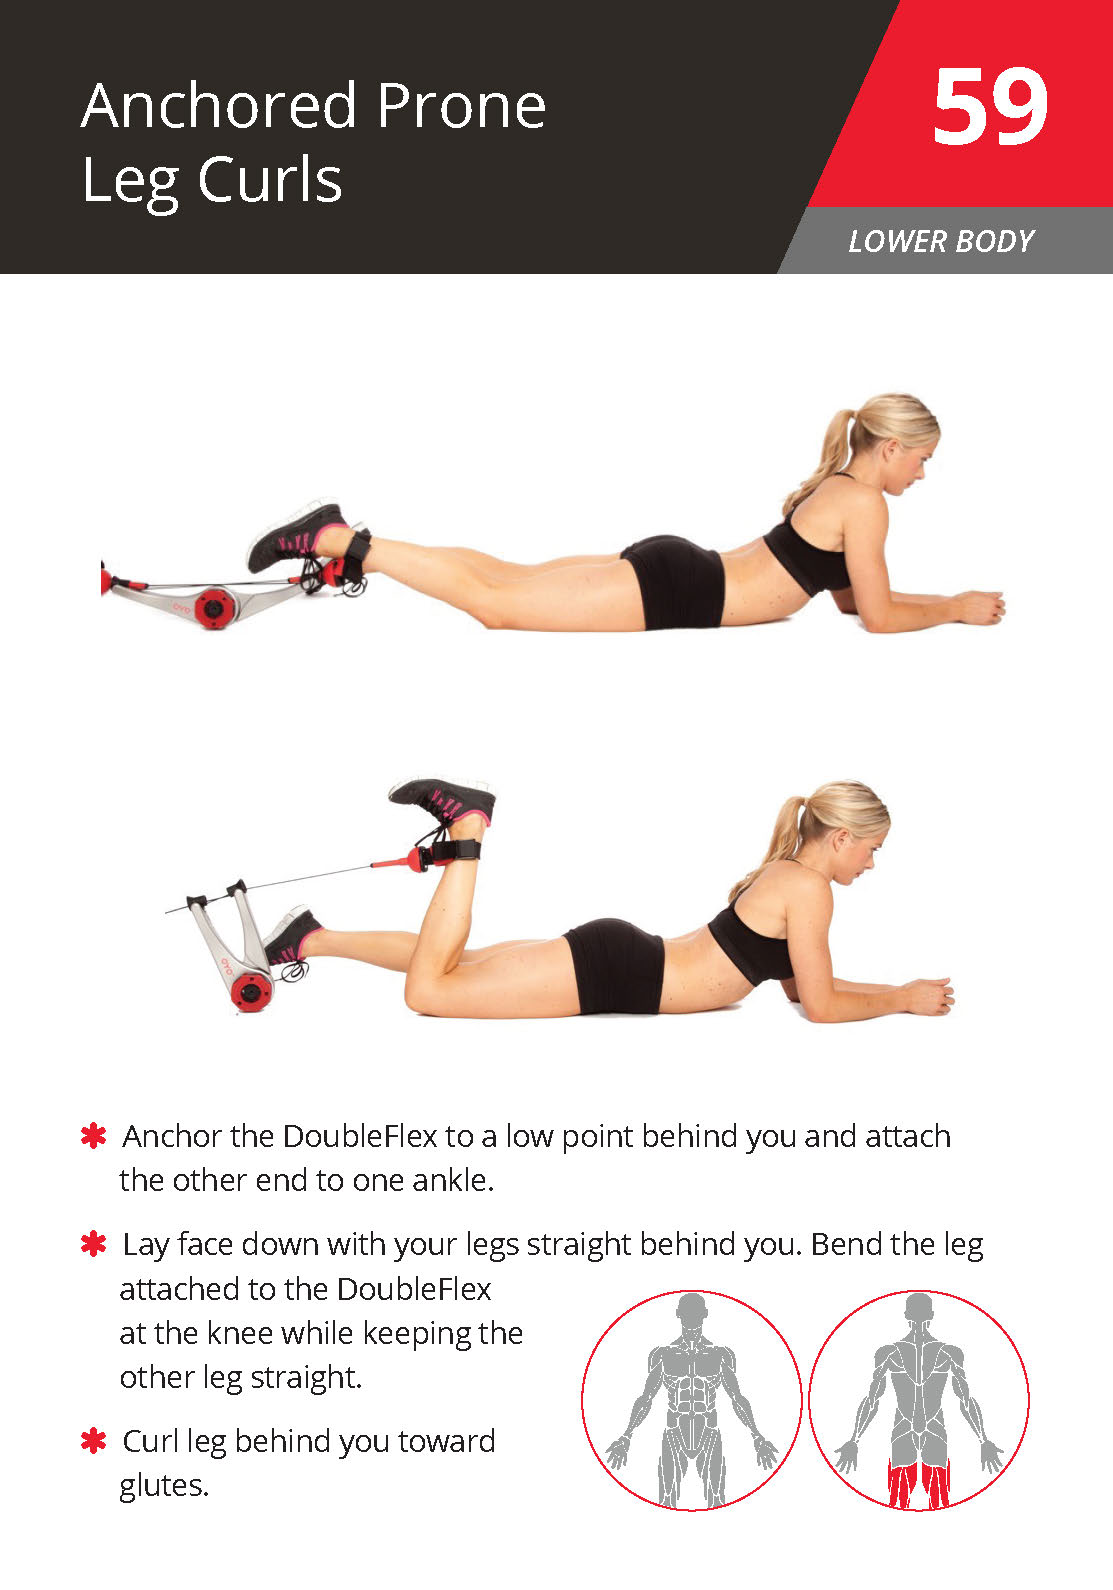 59 Anchored Prone Leg Curls